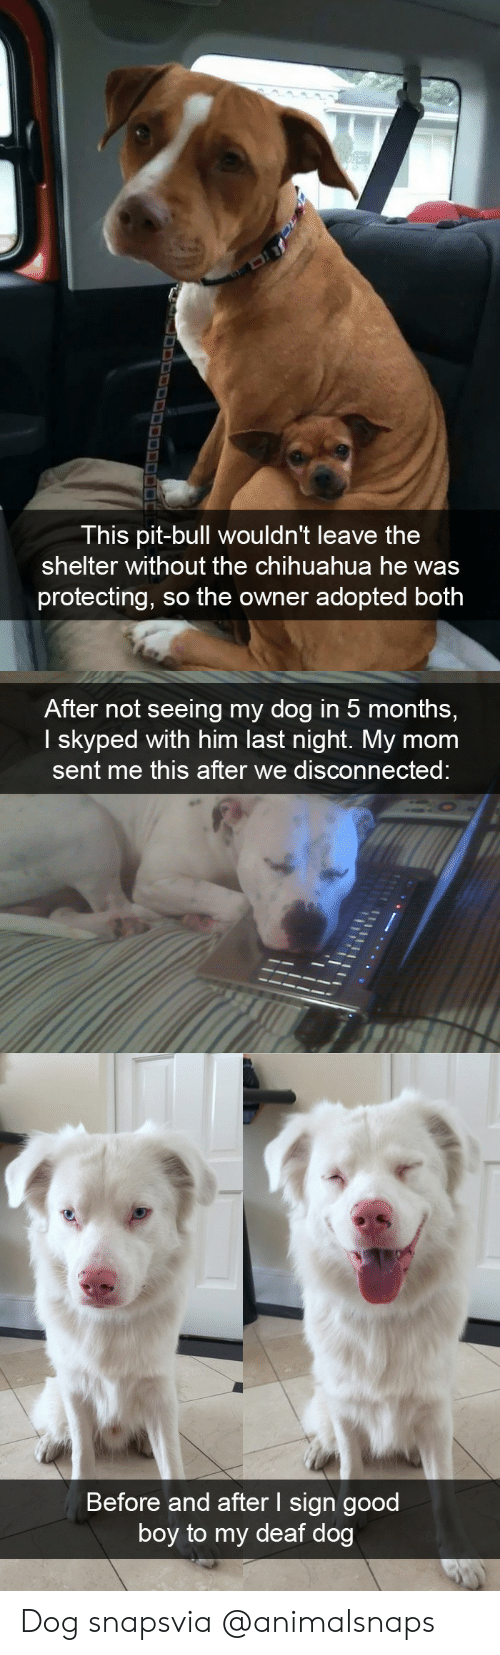 Chihuahua, Target, and Tumblr: This pit-bull wouldn't leave the  shelter without the chihuahua he was  protecting, so the owner adopted both   After not seeing my dog in 5 months,  I skyped with him last night. My mom  sent me this after we disconnected   Before and after I sign good  boy to my deaf dog Dog snapsvia @animalsnaps